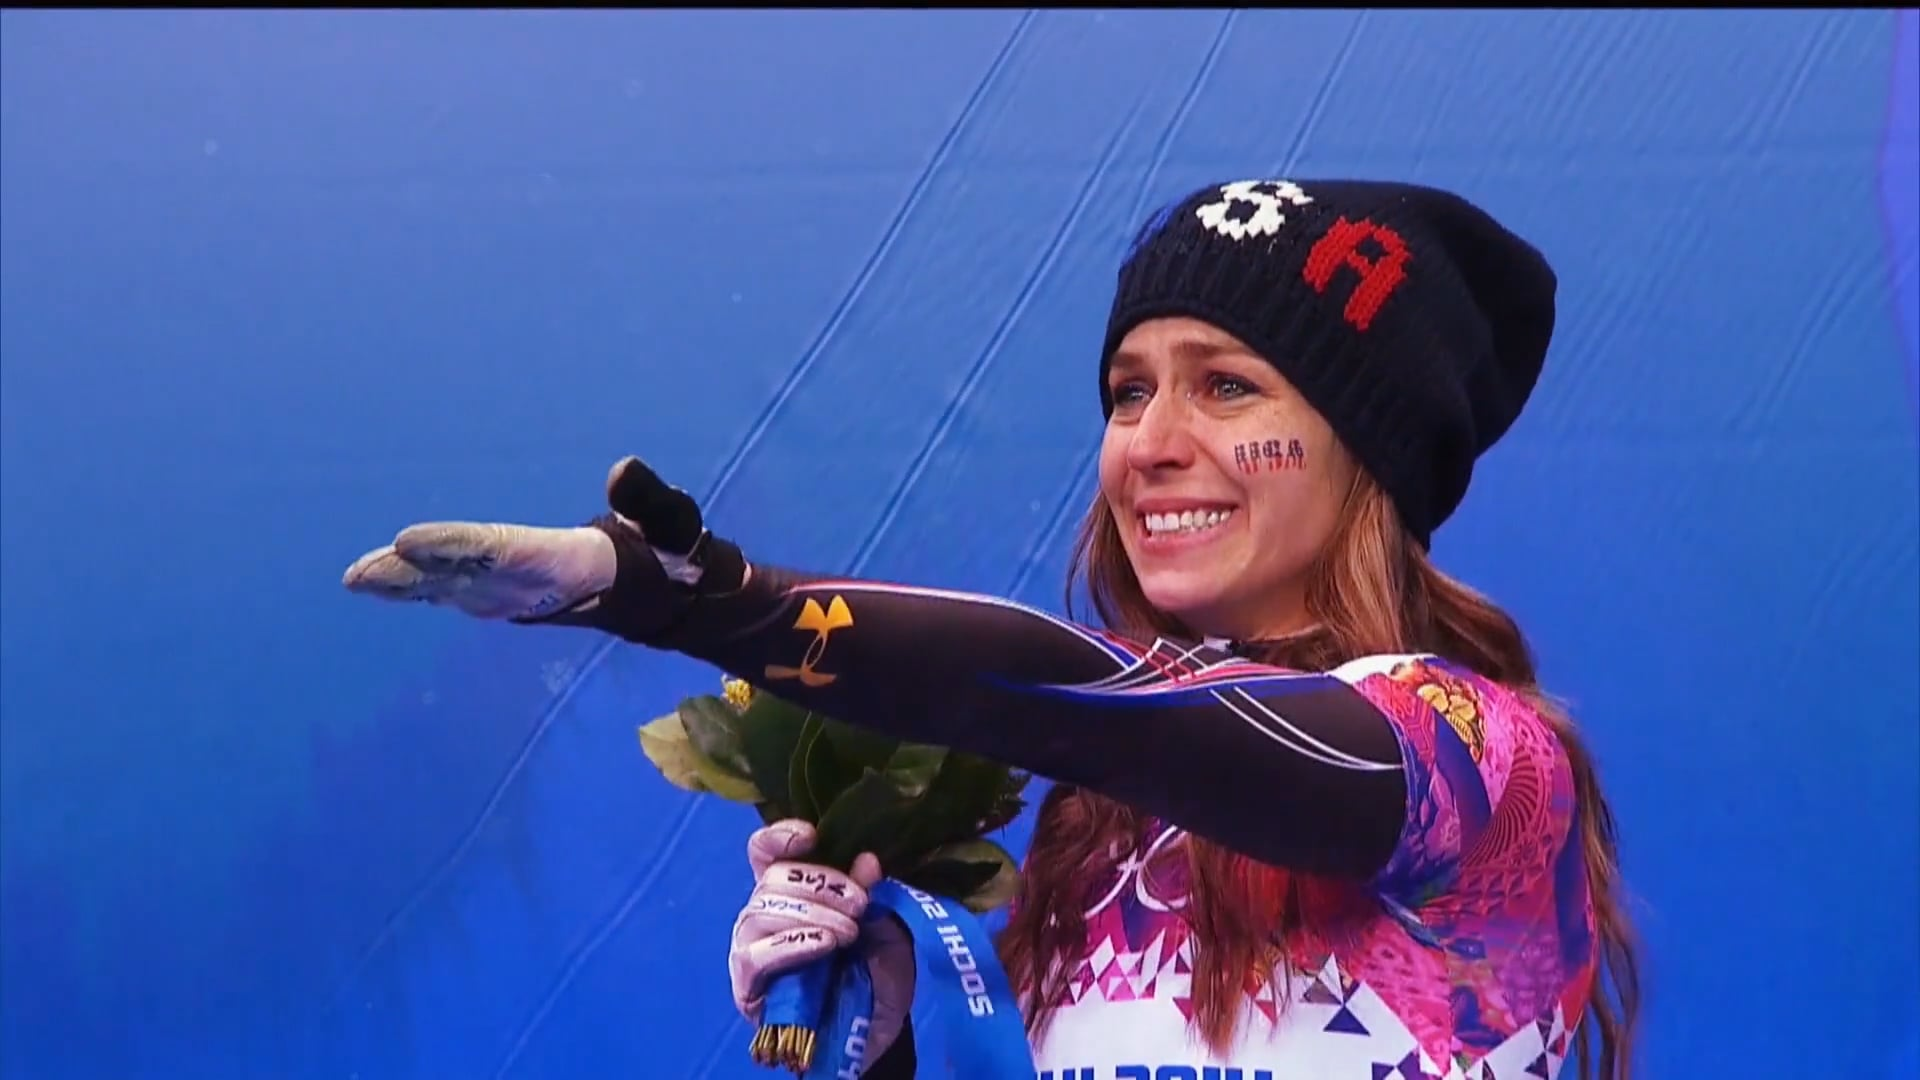 TEGNA Olympic Sizzle 2018